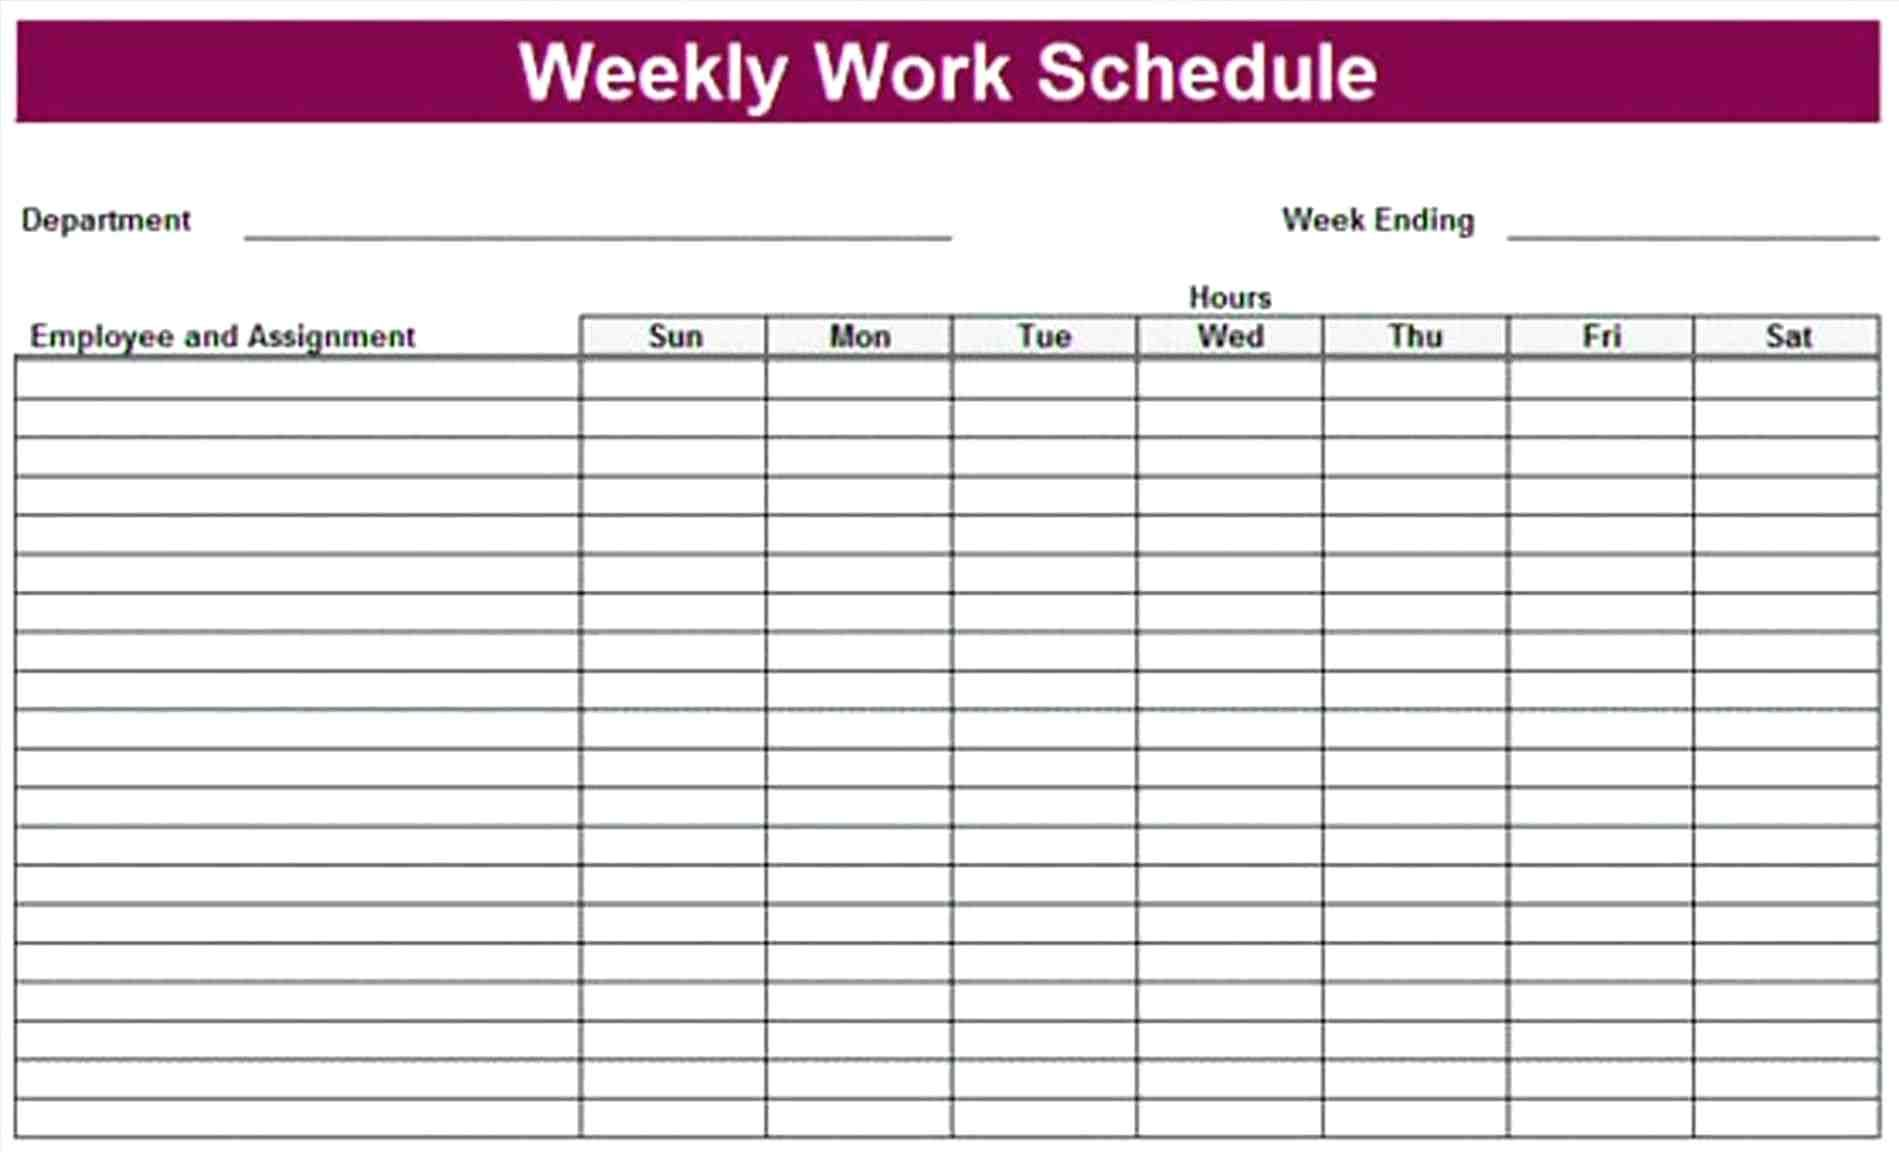 Sample Weekly Hourly Planner Template Word Daily Schedule Hourly Agenda Template S Daily Calendar Template Weekly Schedule Printable Monthly Schedule Template